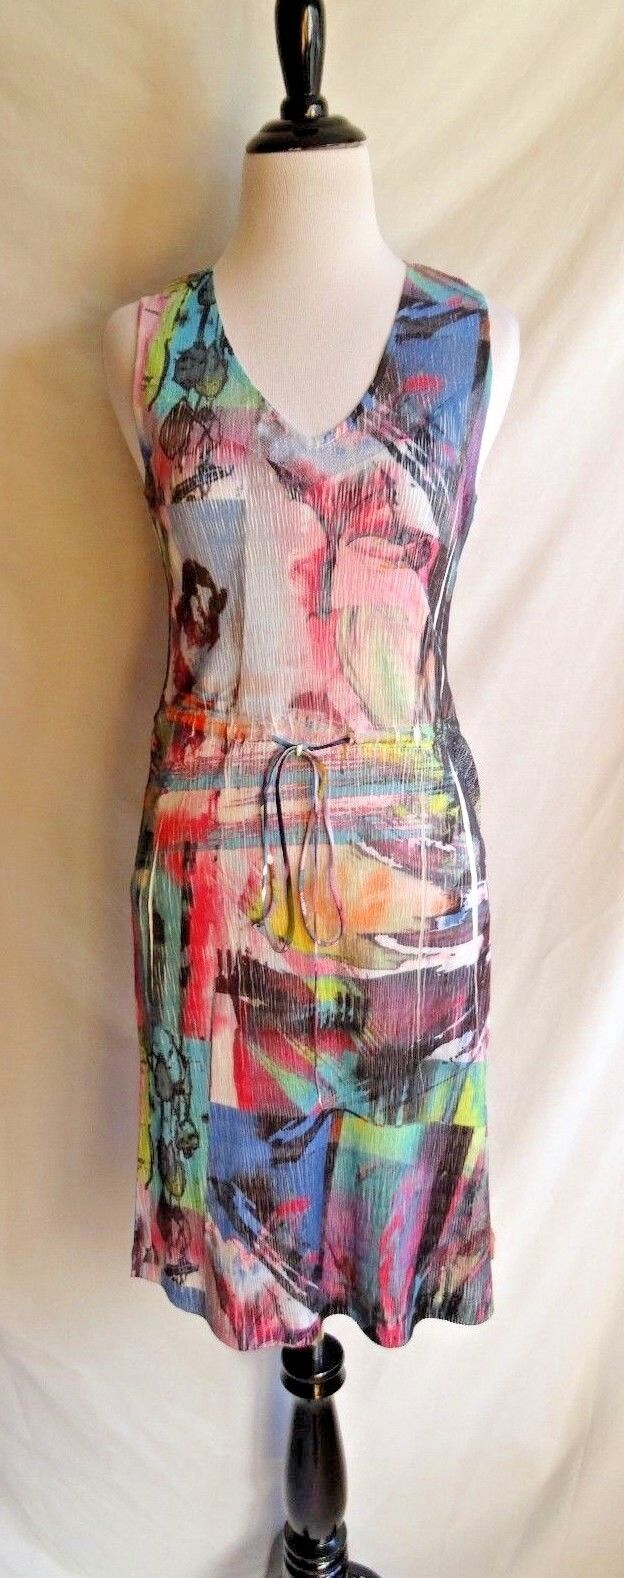 Komarov L Charmeuse Artsy Abstract Bright Neon Farbeful Party Cocktail Dress